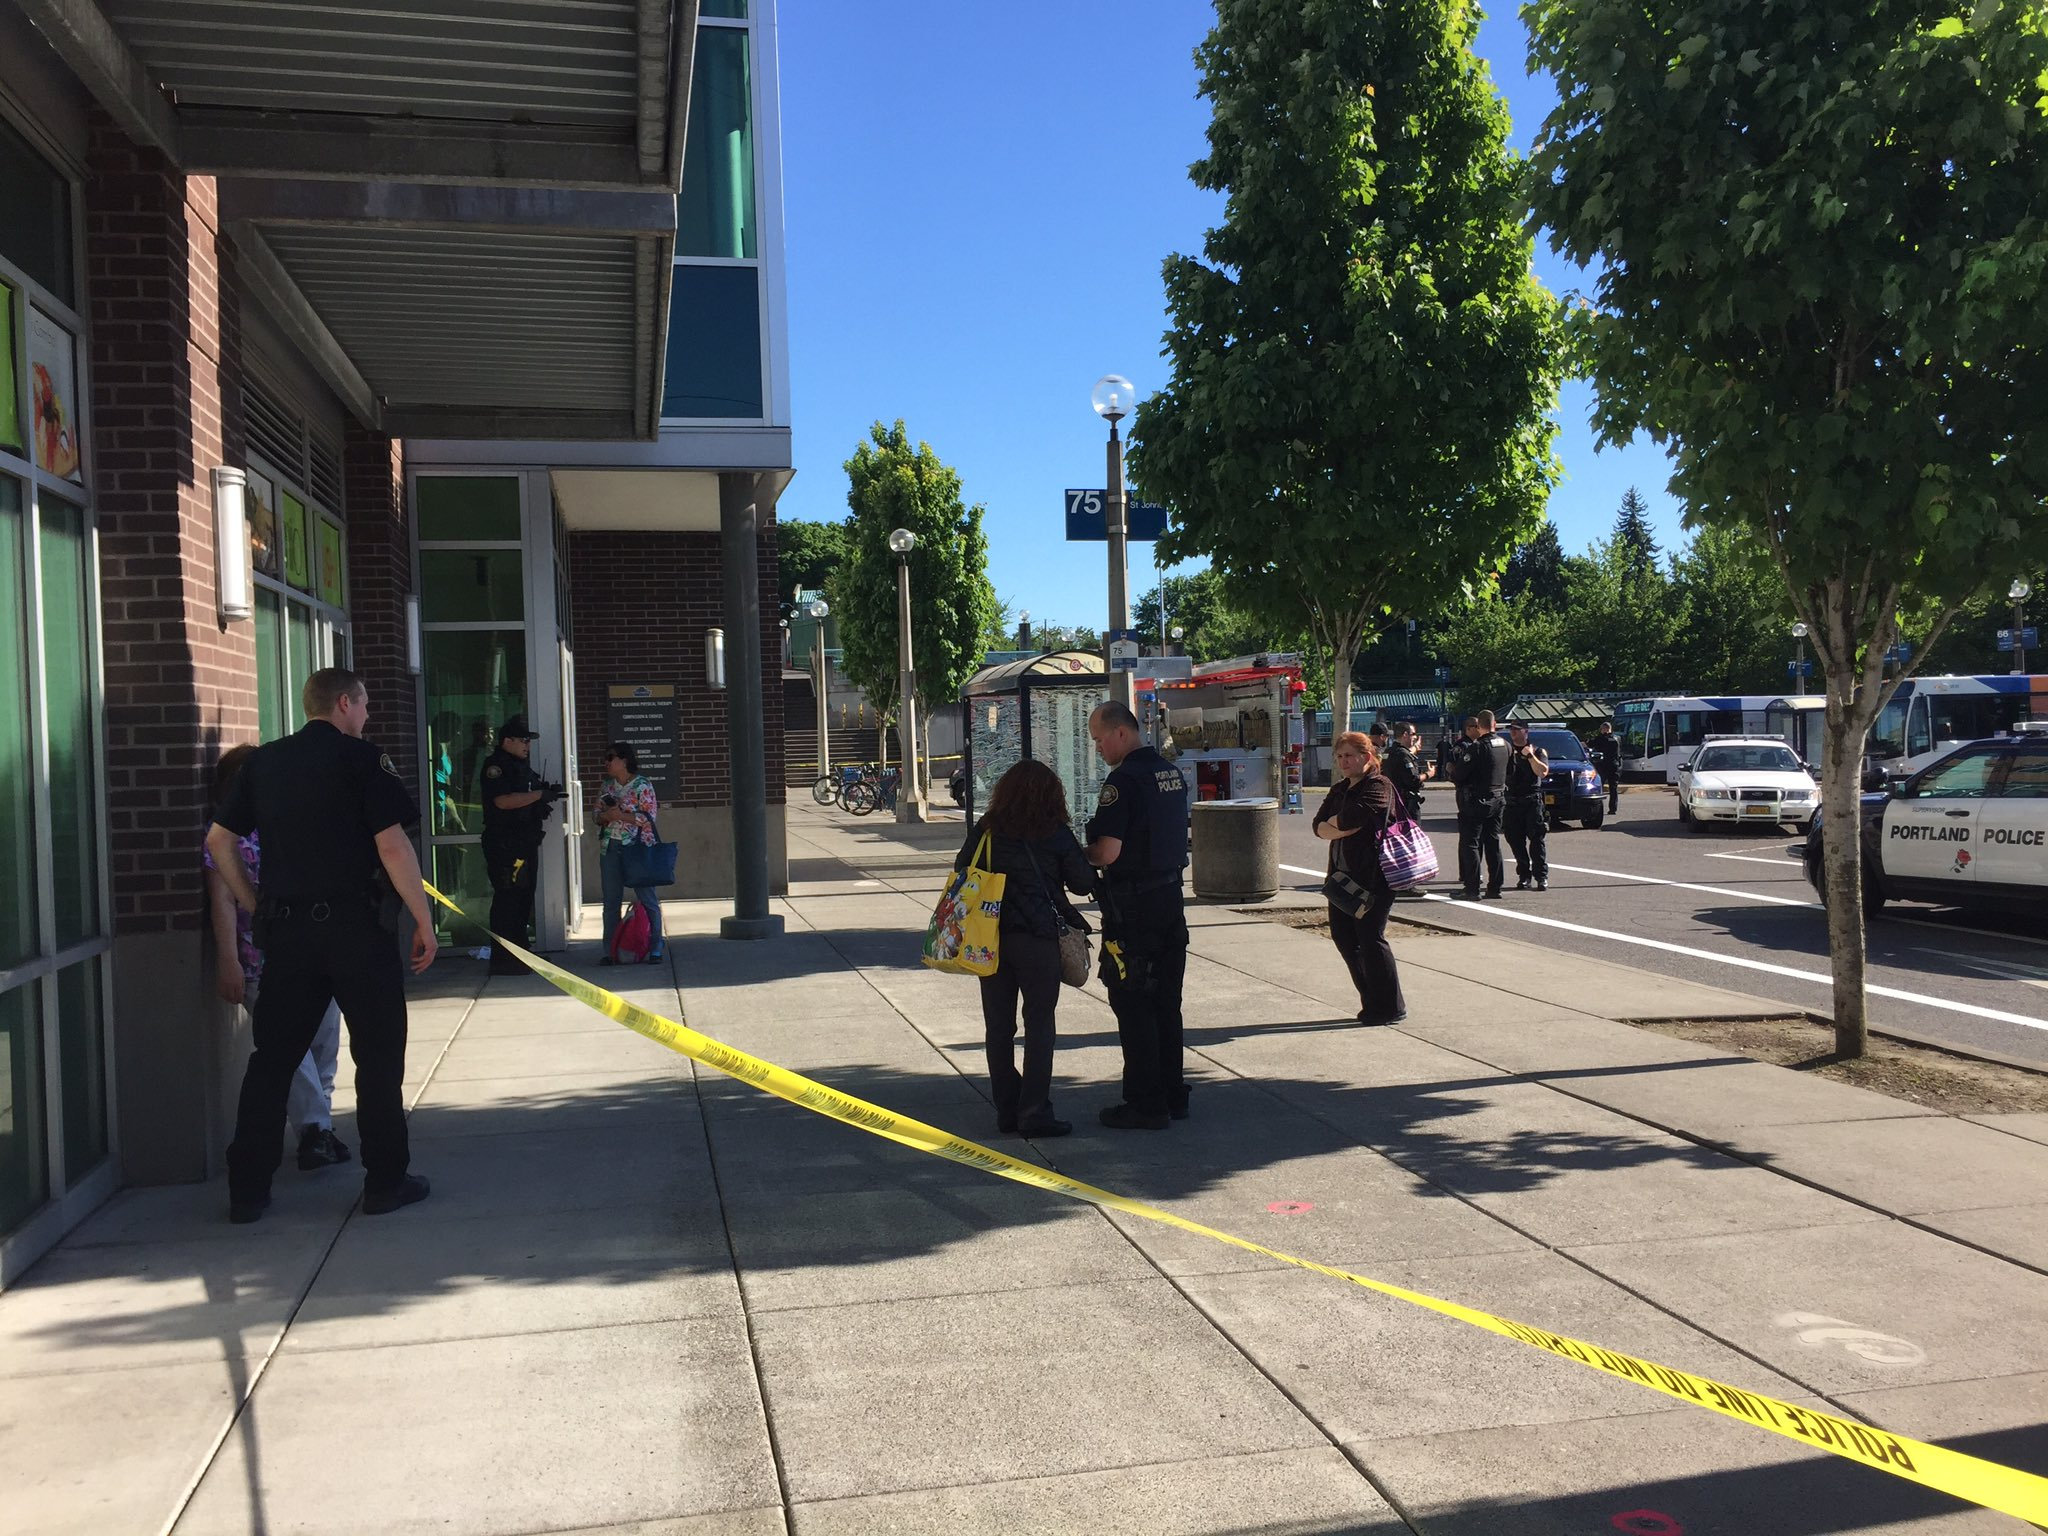 Hollywood Transit Center stabbing investigation (KATU News photo)